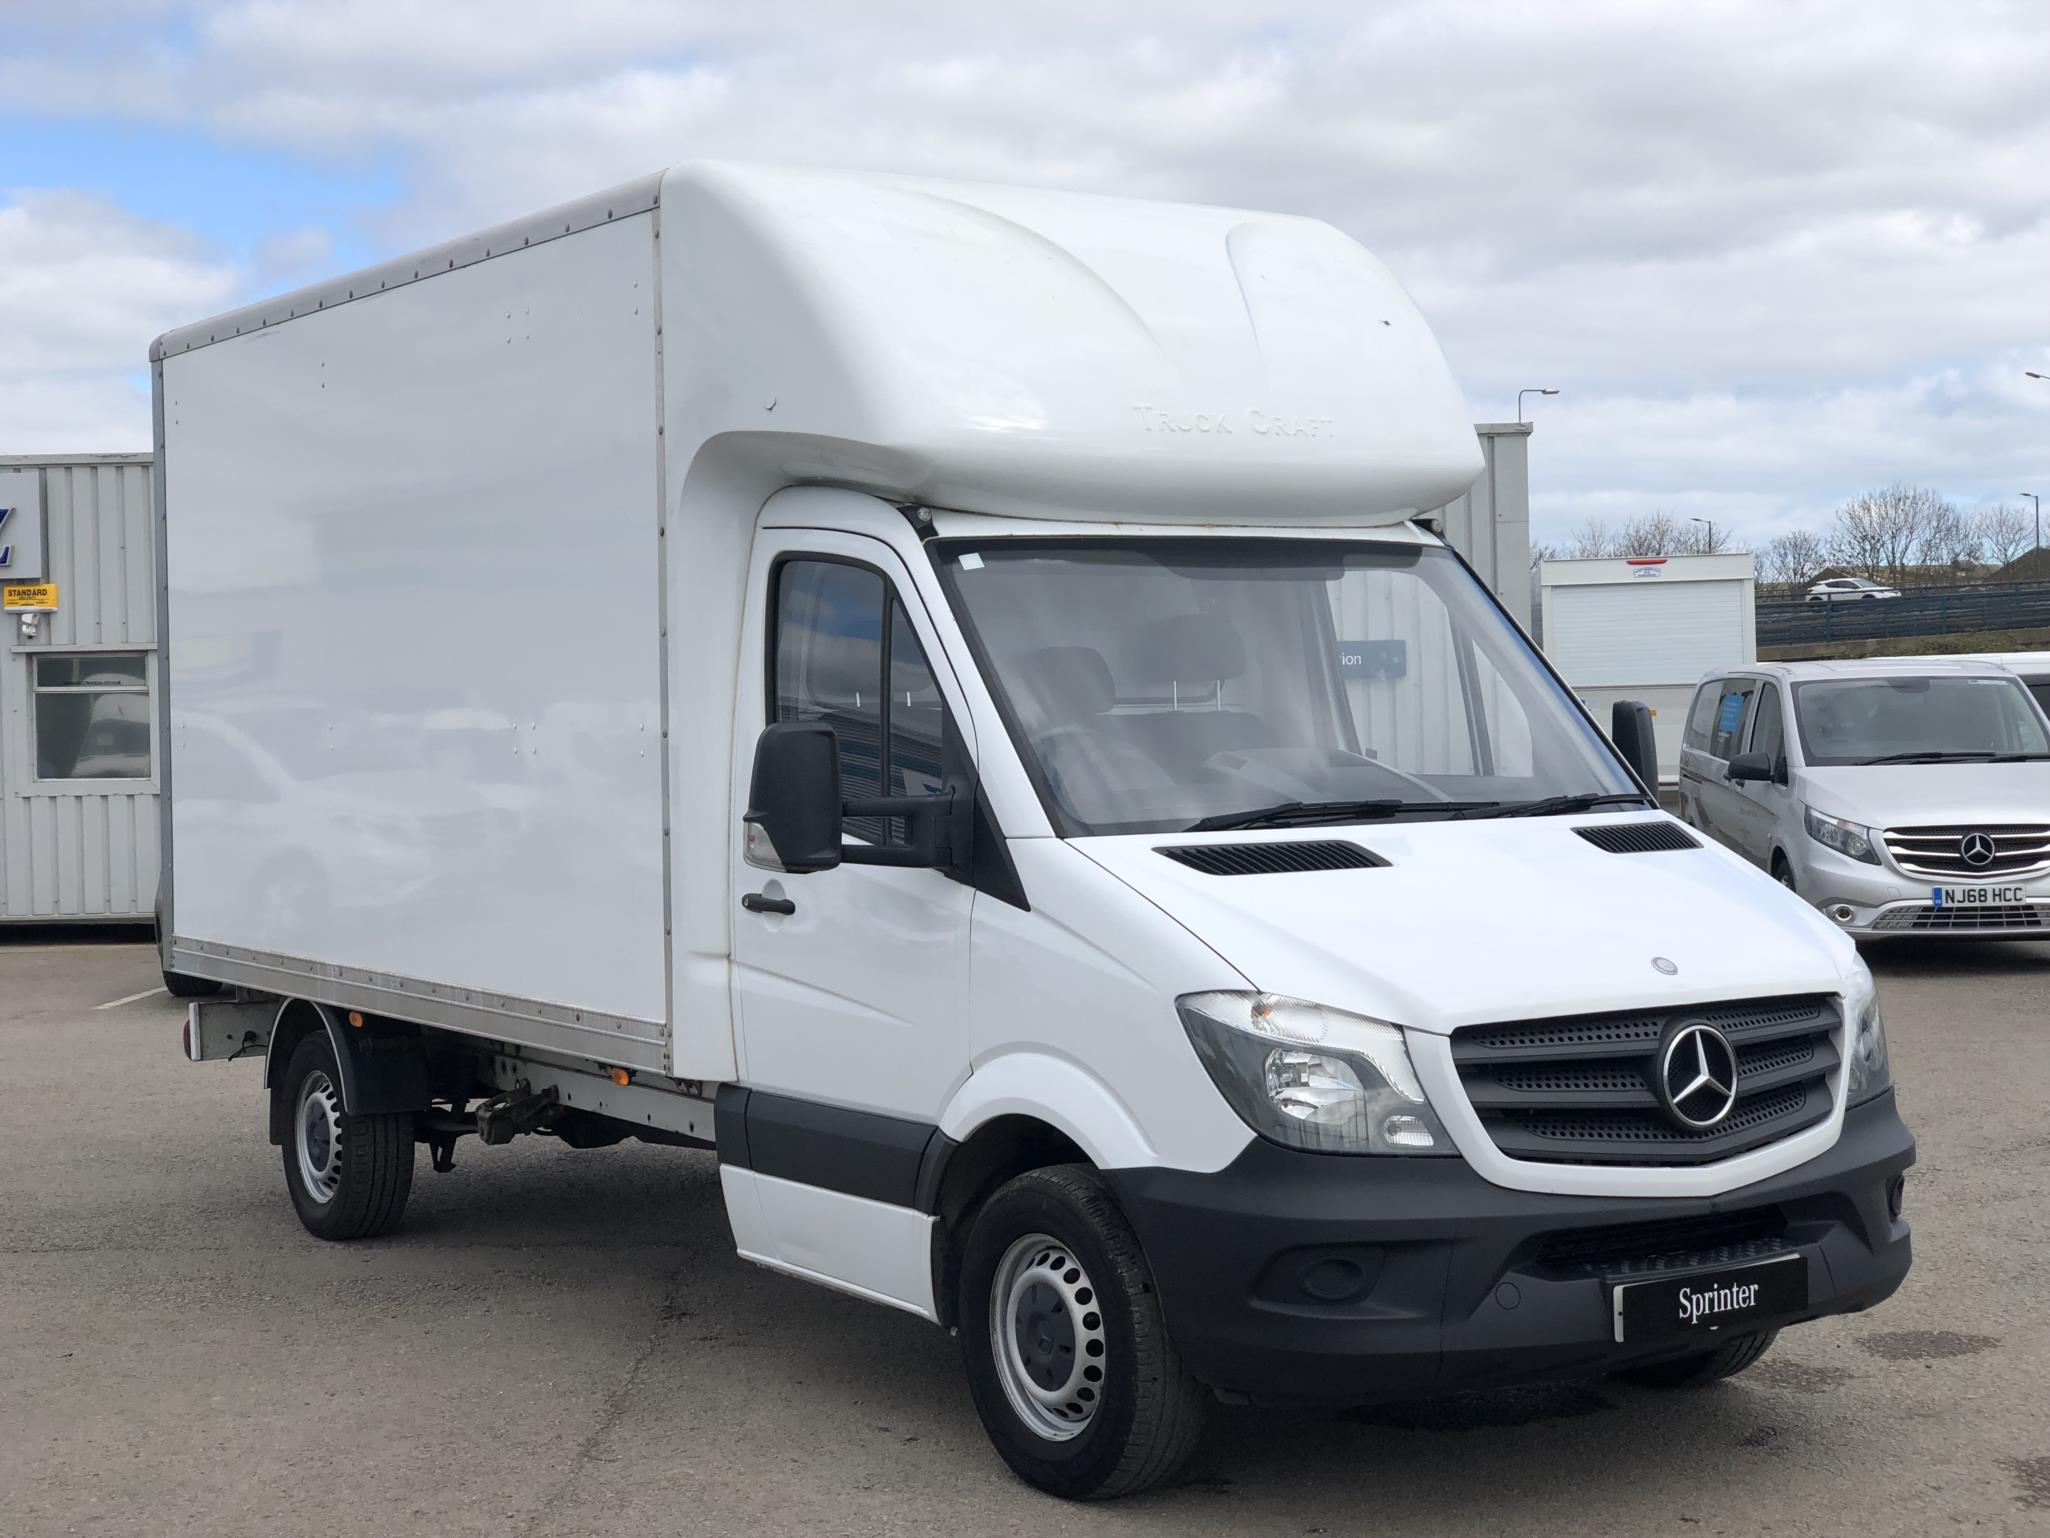 c82a922682 Mercedes-Benz Sprinter Chassis 313CDI Van Image 1. Low finance available